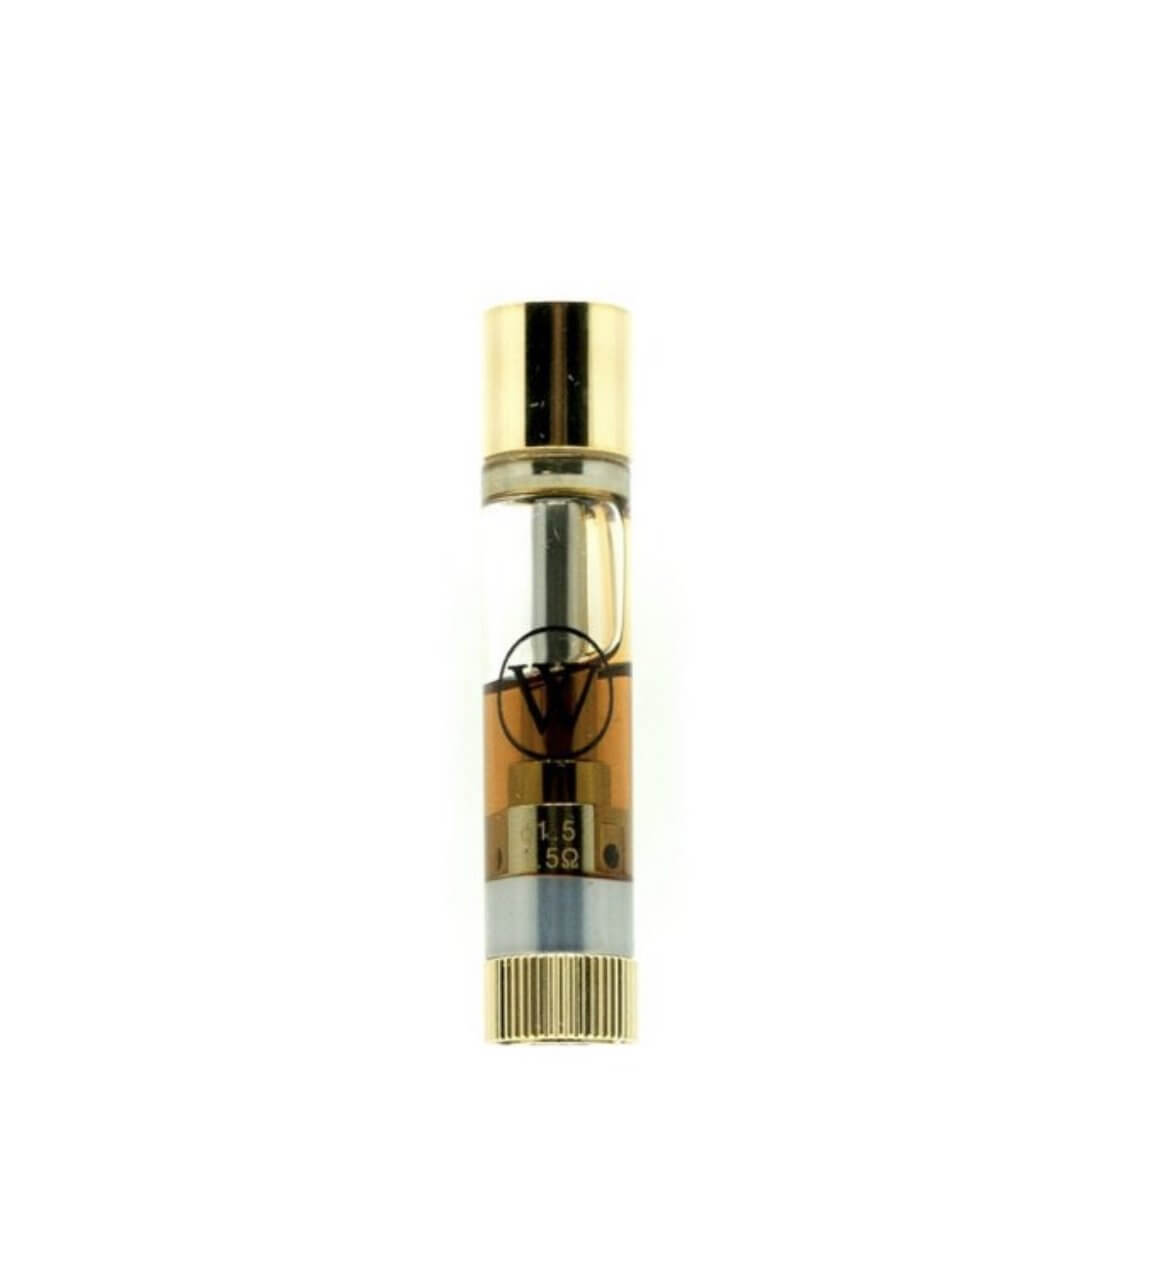 West Coast Smoke Co- Gold Digger Pen Cartridge